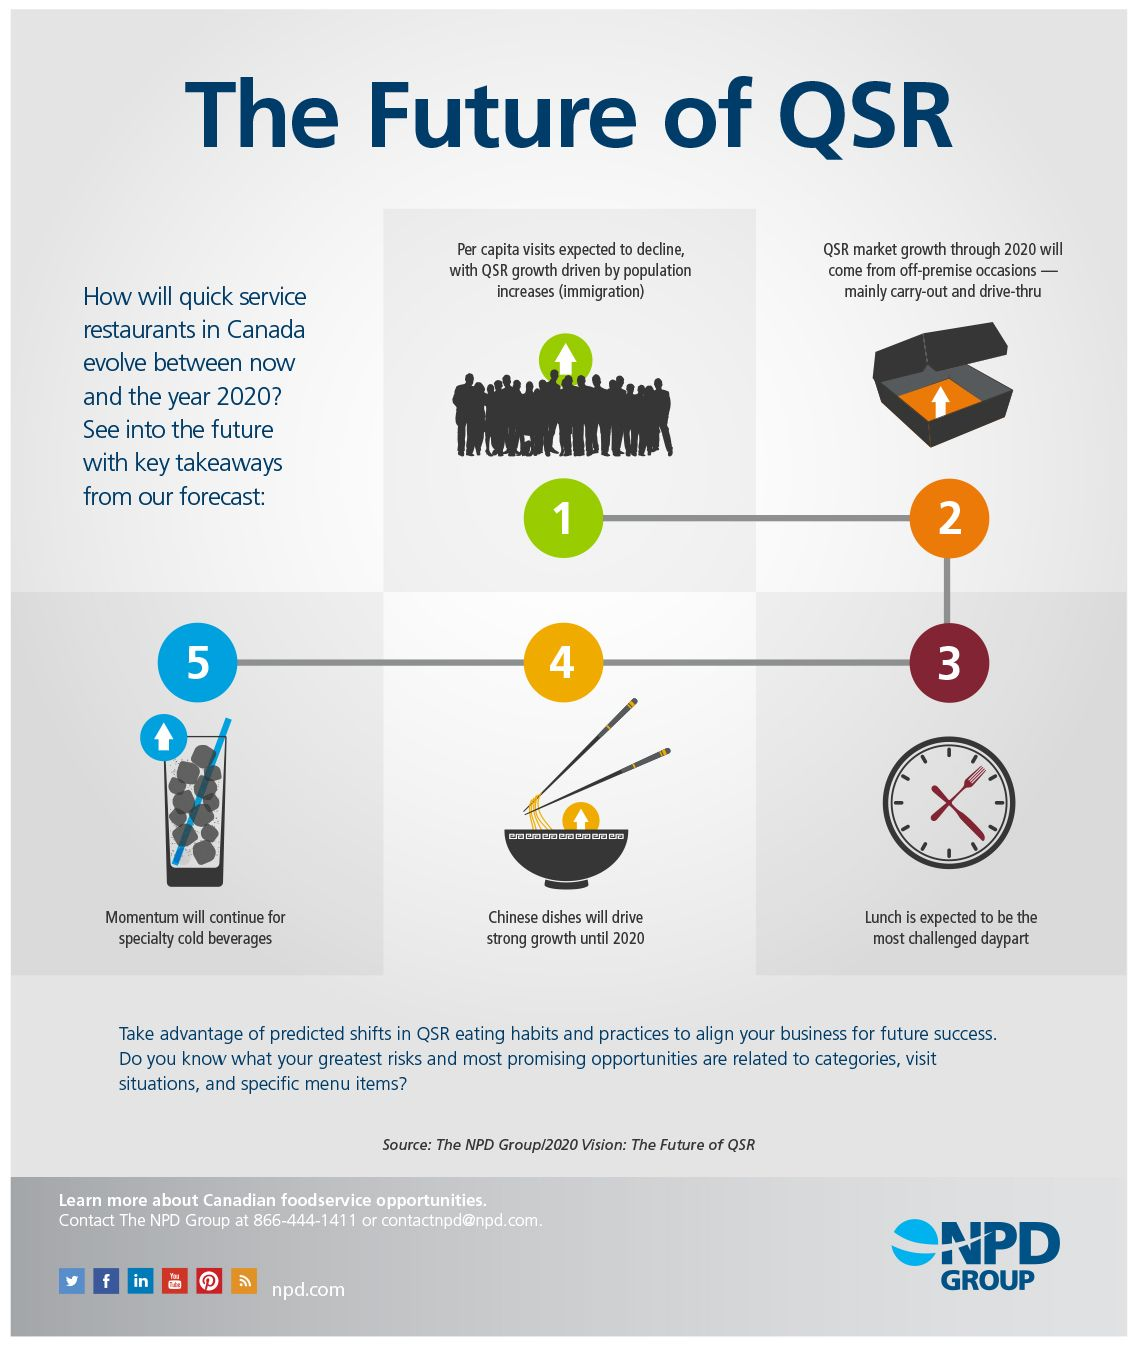 Chinese Dishes Will Drive Strong Growth At Canadian Qsrs Until 2020 Https Www Npd Com Trends Downloads Future Of Qsr Retail Trends Qsrs Restaurant